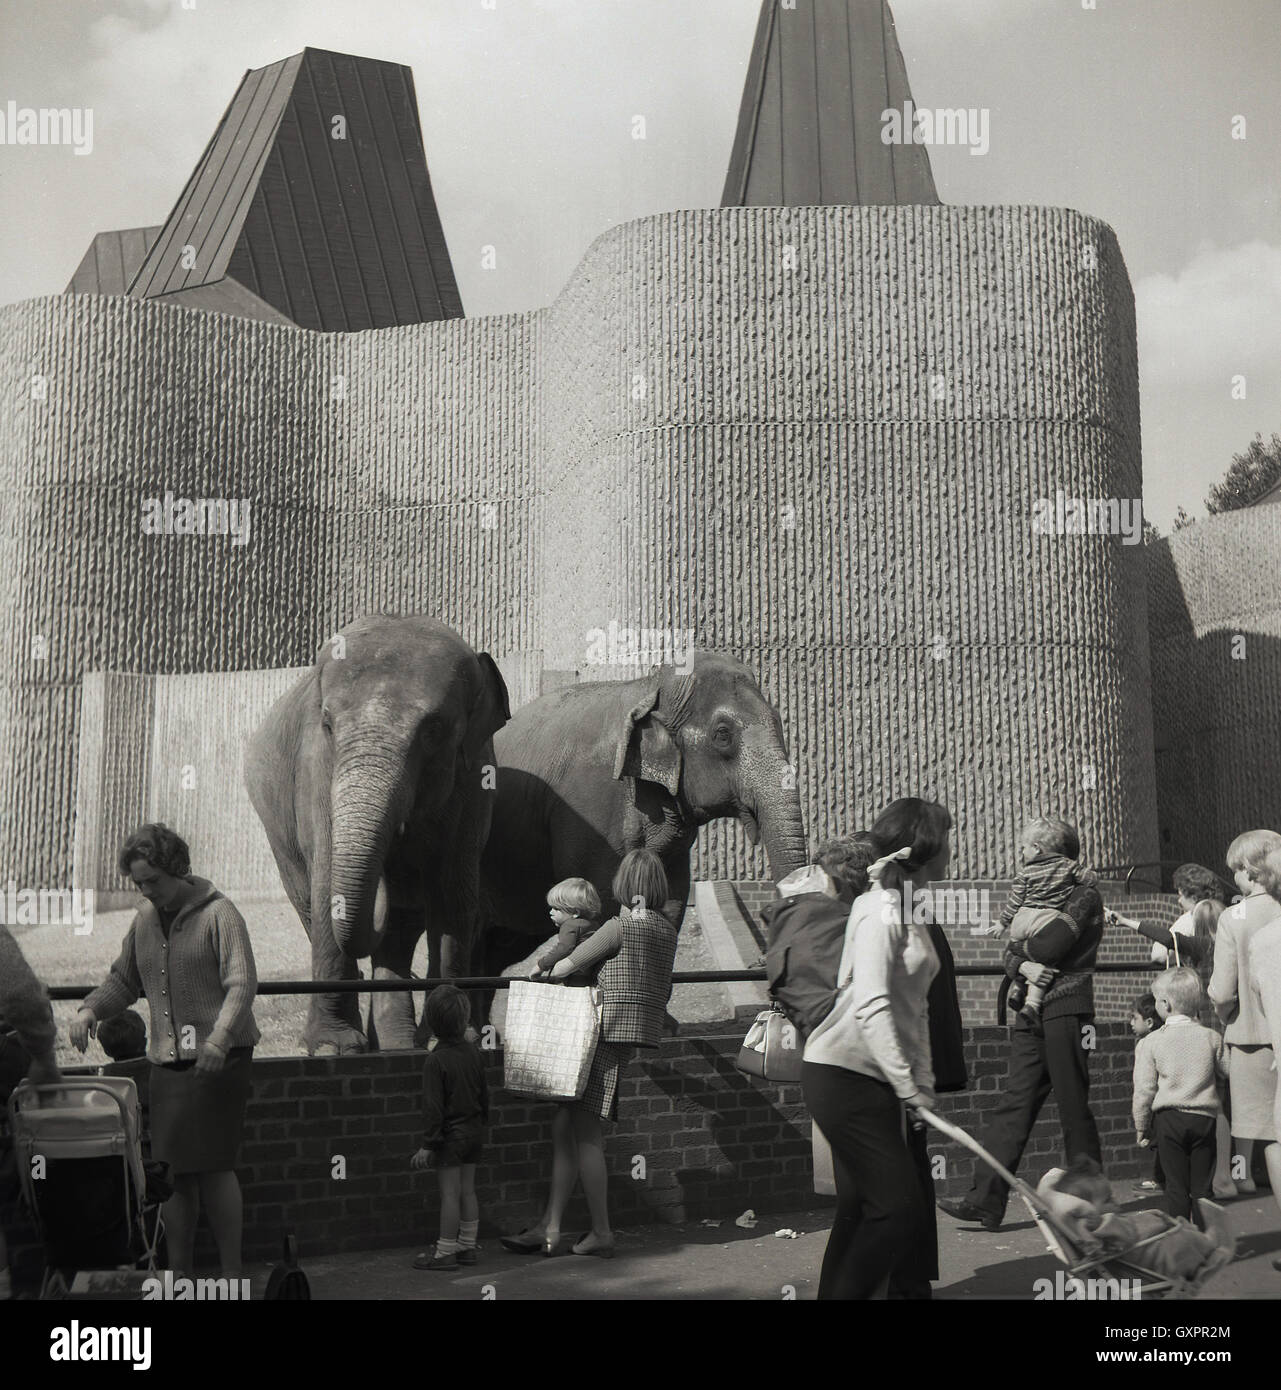 1960s, historical, Getting close to the elephants at London Zoo, Regents Park, London, England. Stock Photo